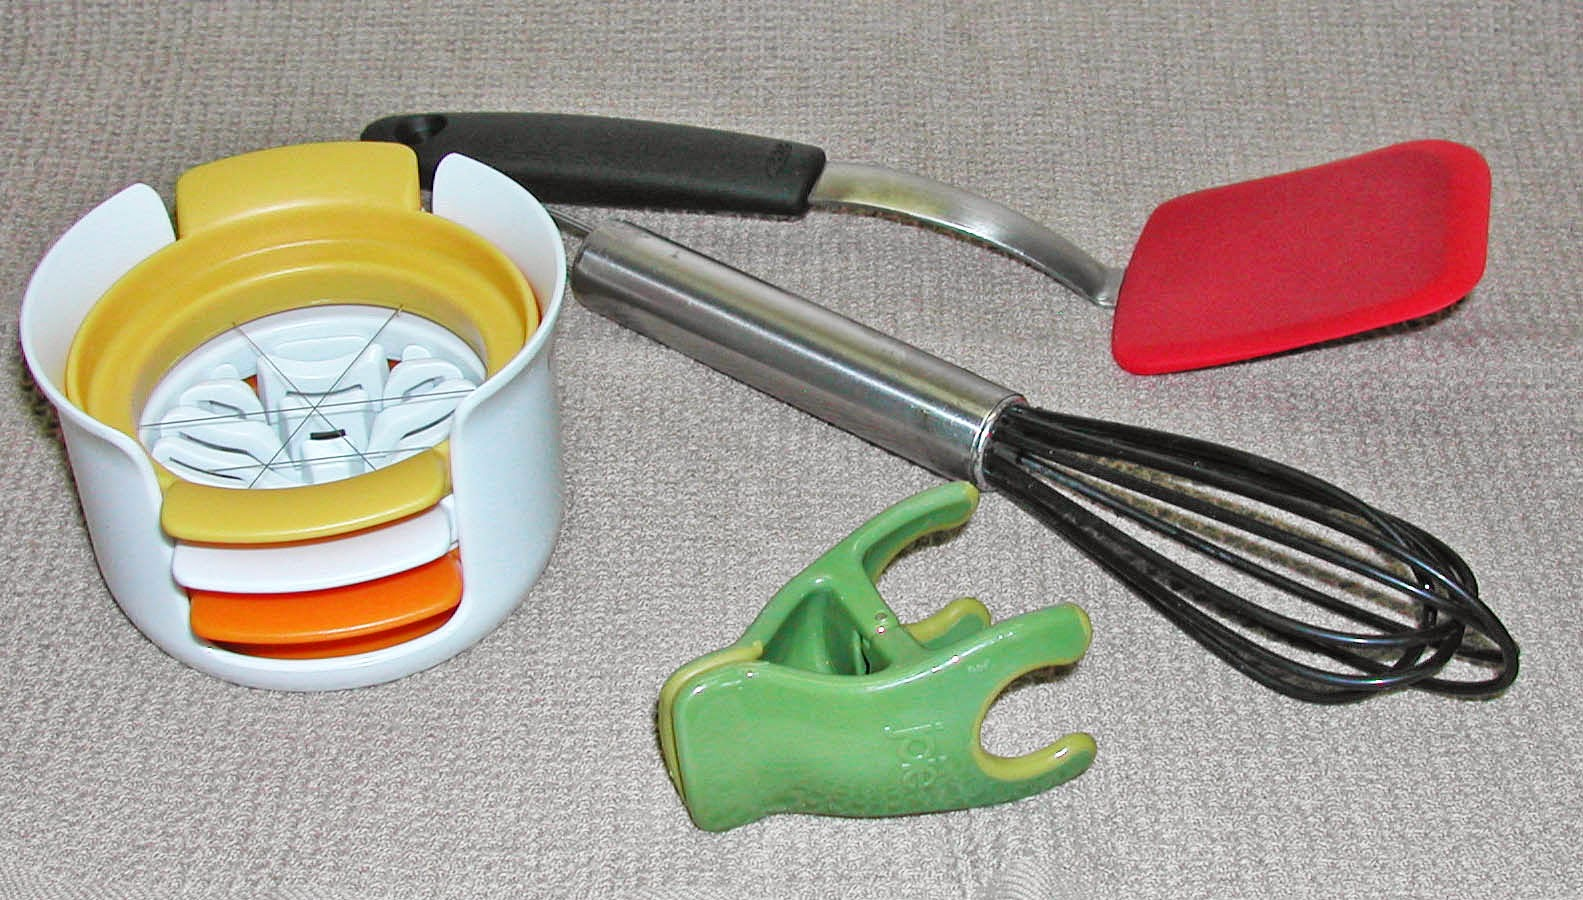 The Latest Kitchen Gadgets Countertop Iowa Housewife Our Newest Favorite Tools